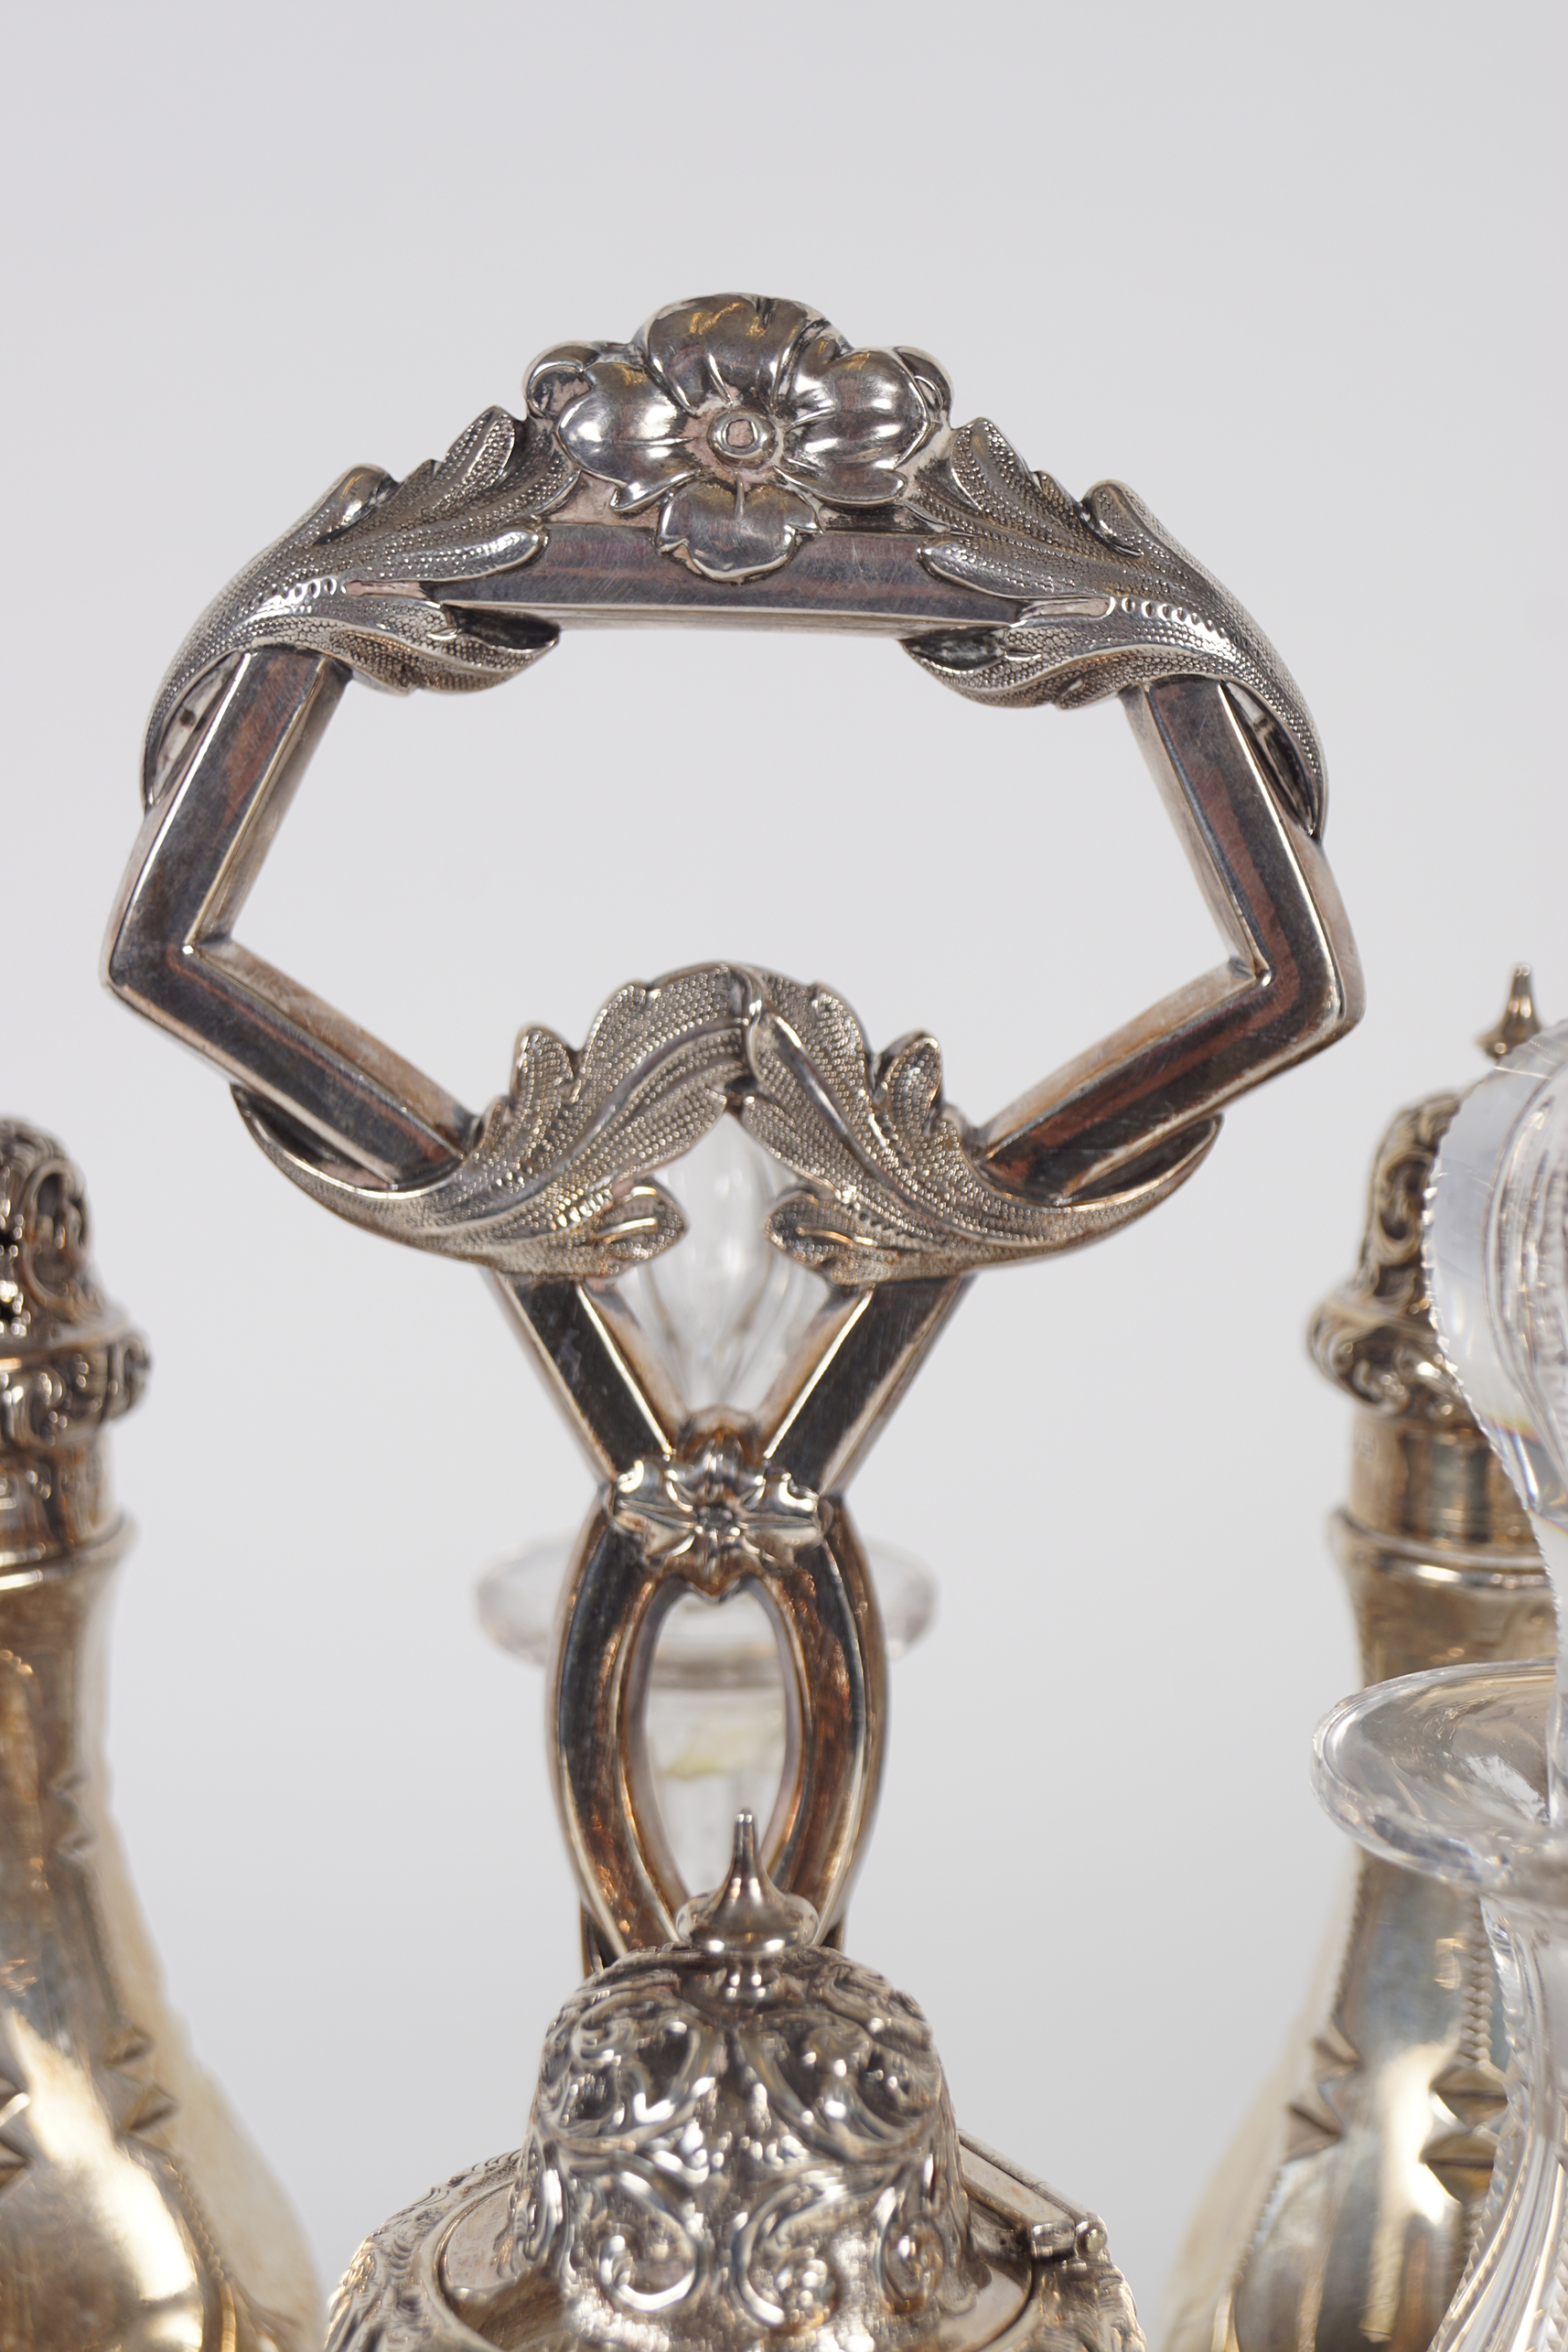 SILVER CONDIMENT SET - Image 2 of 7